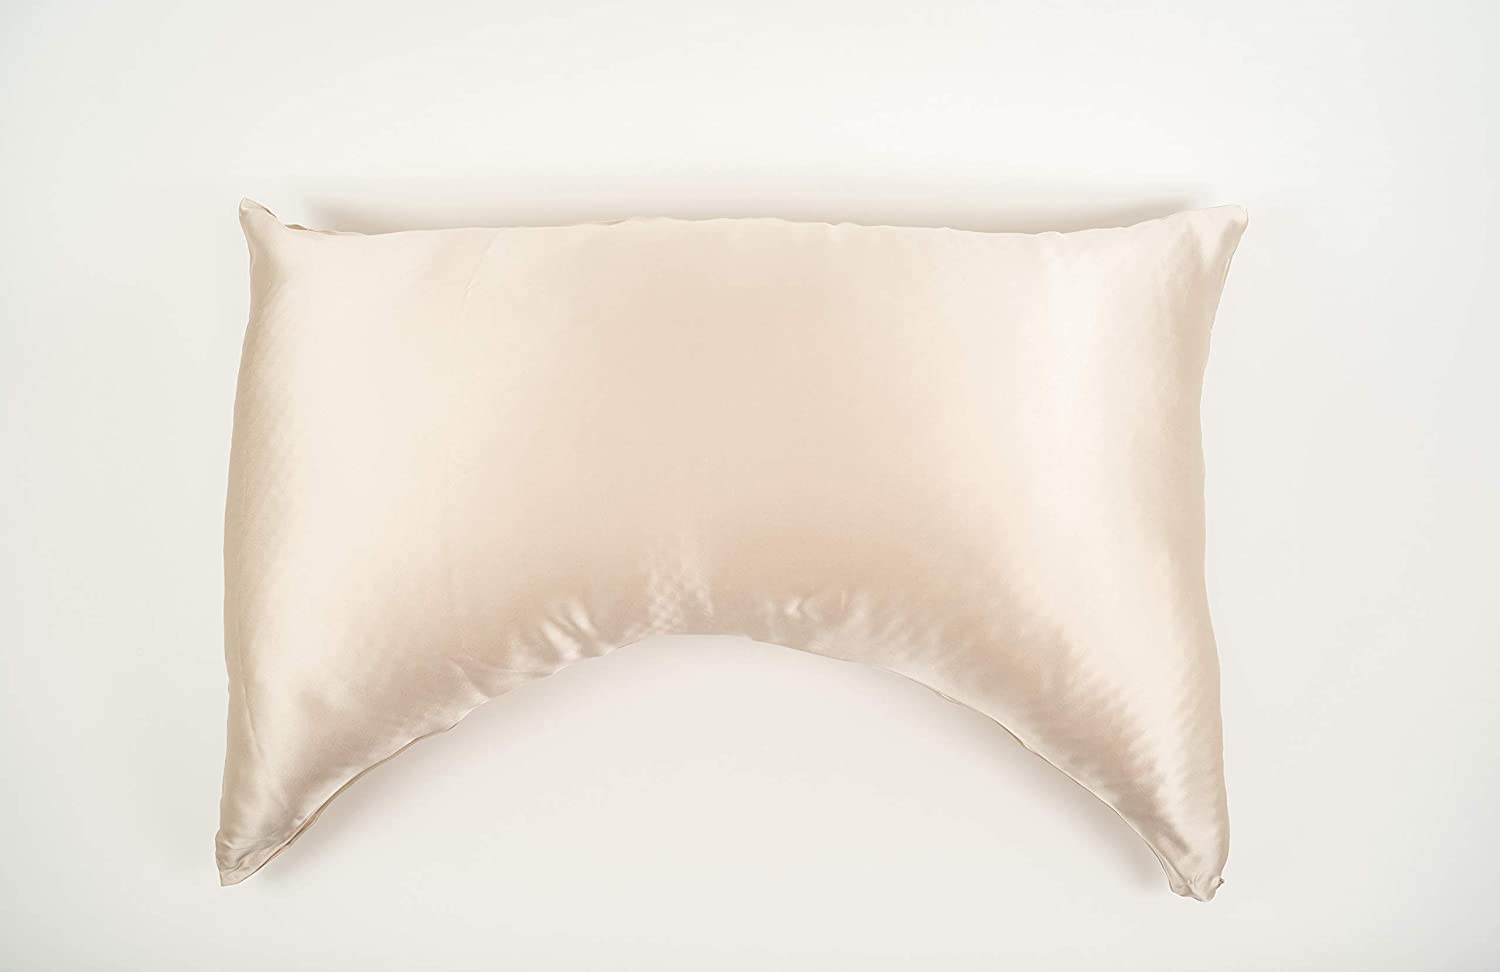 EverSilk Be super welcome Max 63% OFF by Infinitemoon - Curved to Pillowcase Silk Designed